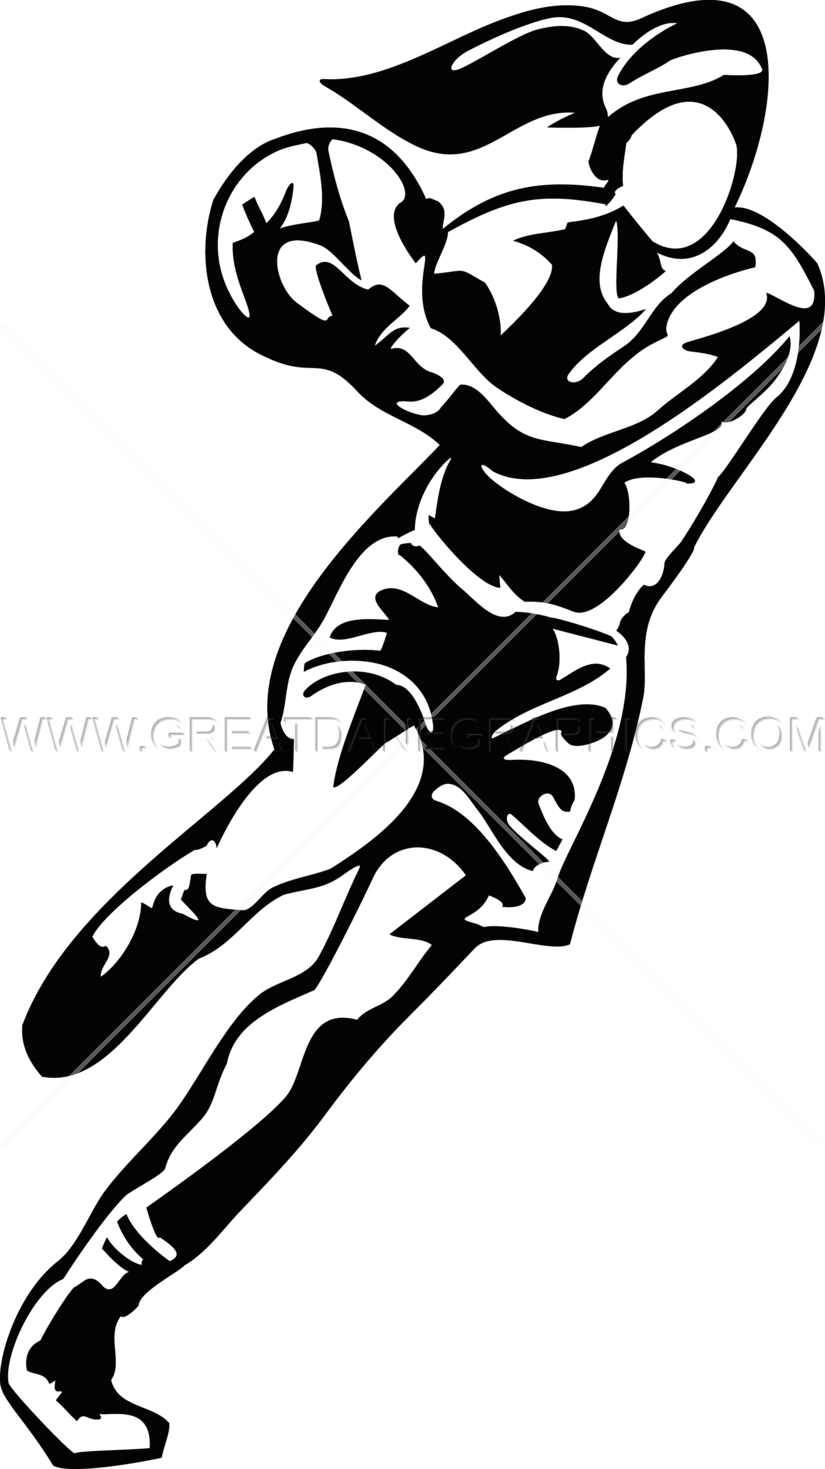 Basketball player dunking clipart image free download Female Basketball Player | Production Ready Artwork for T-Shirt Printing image free download